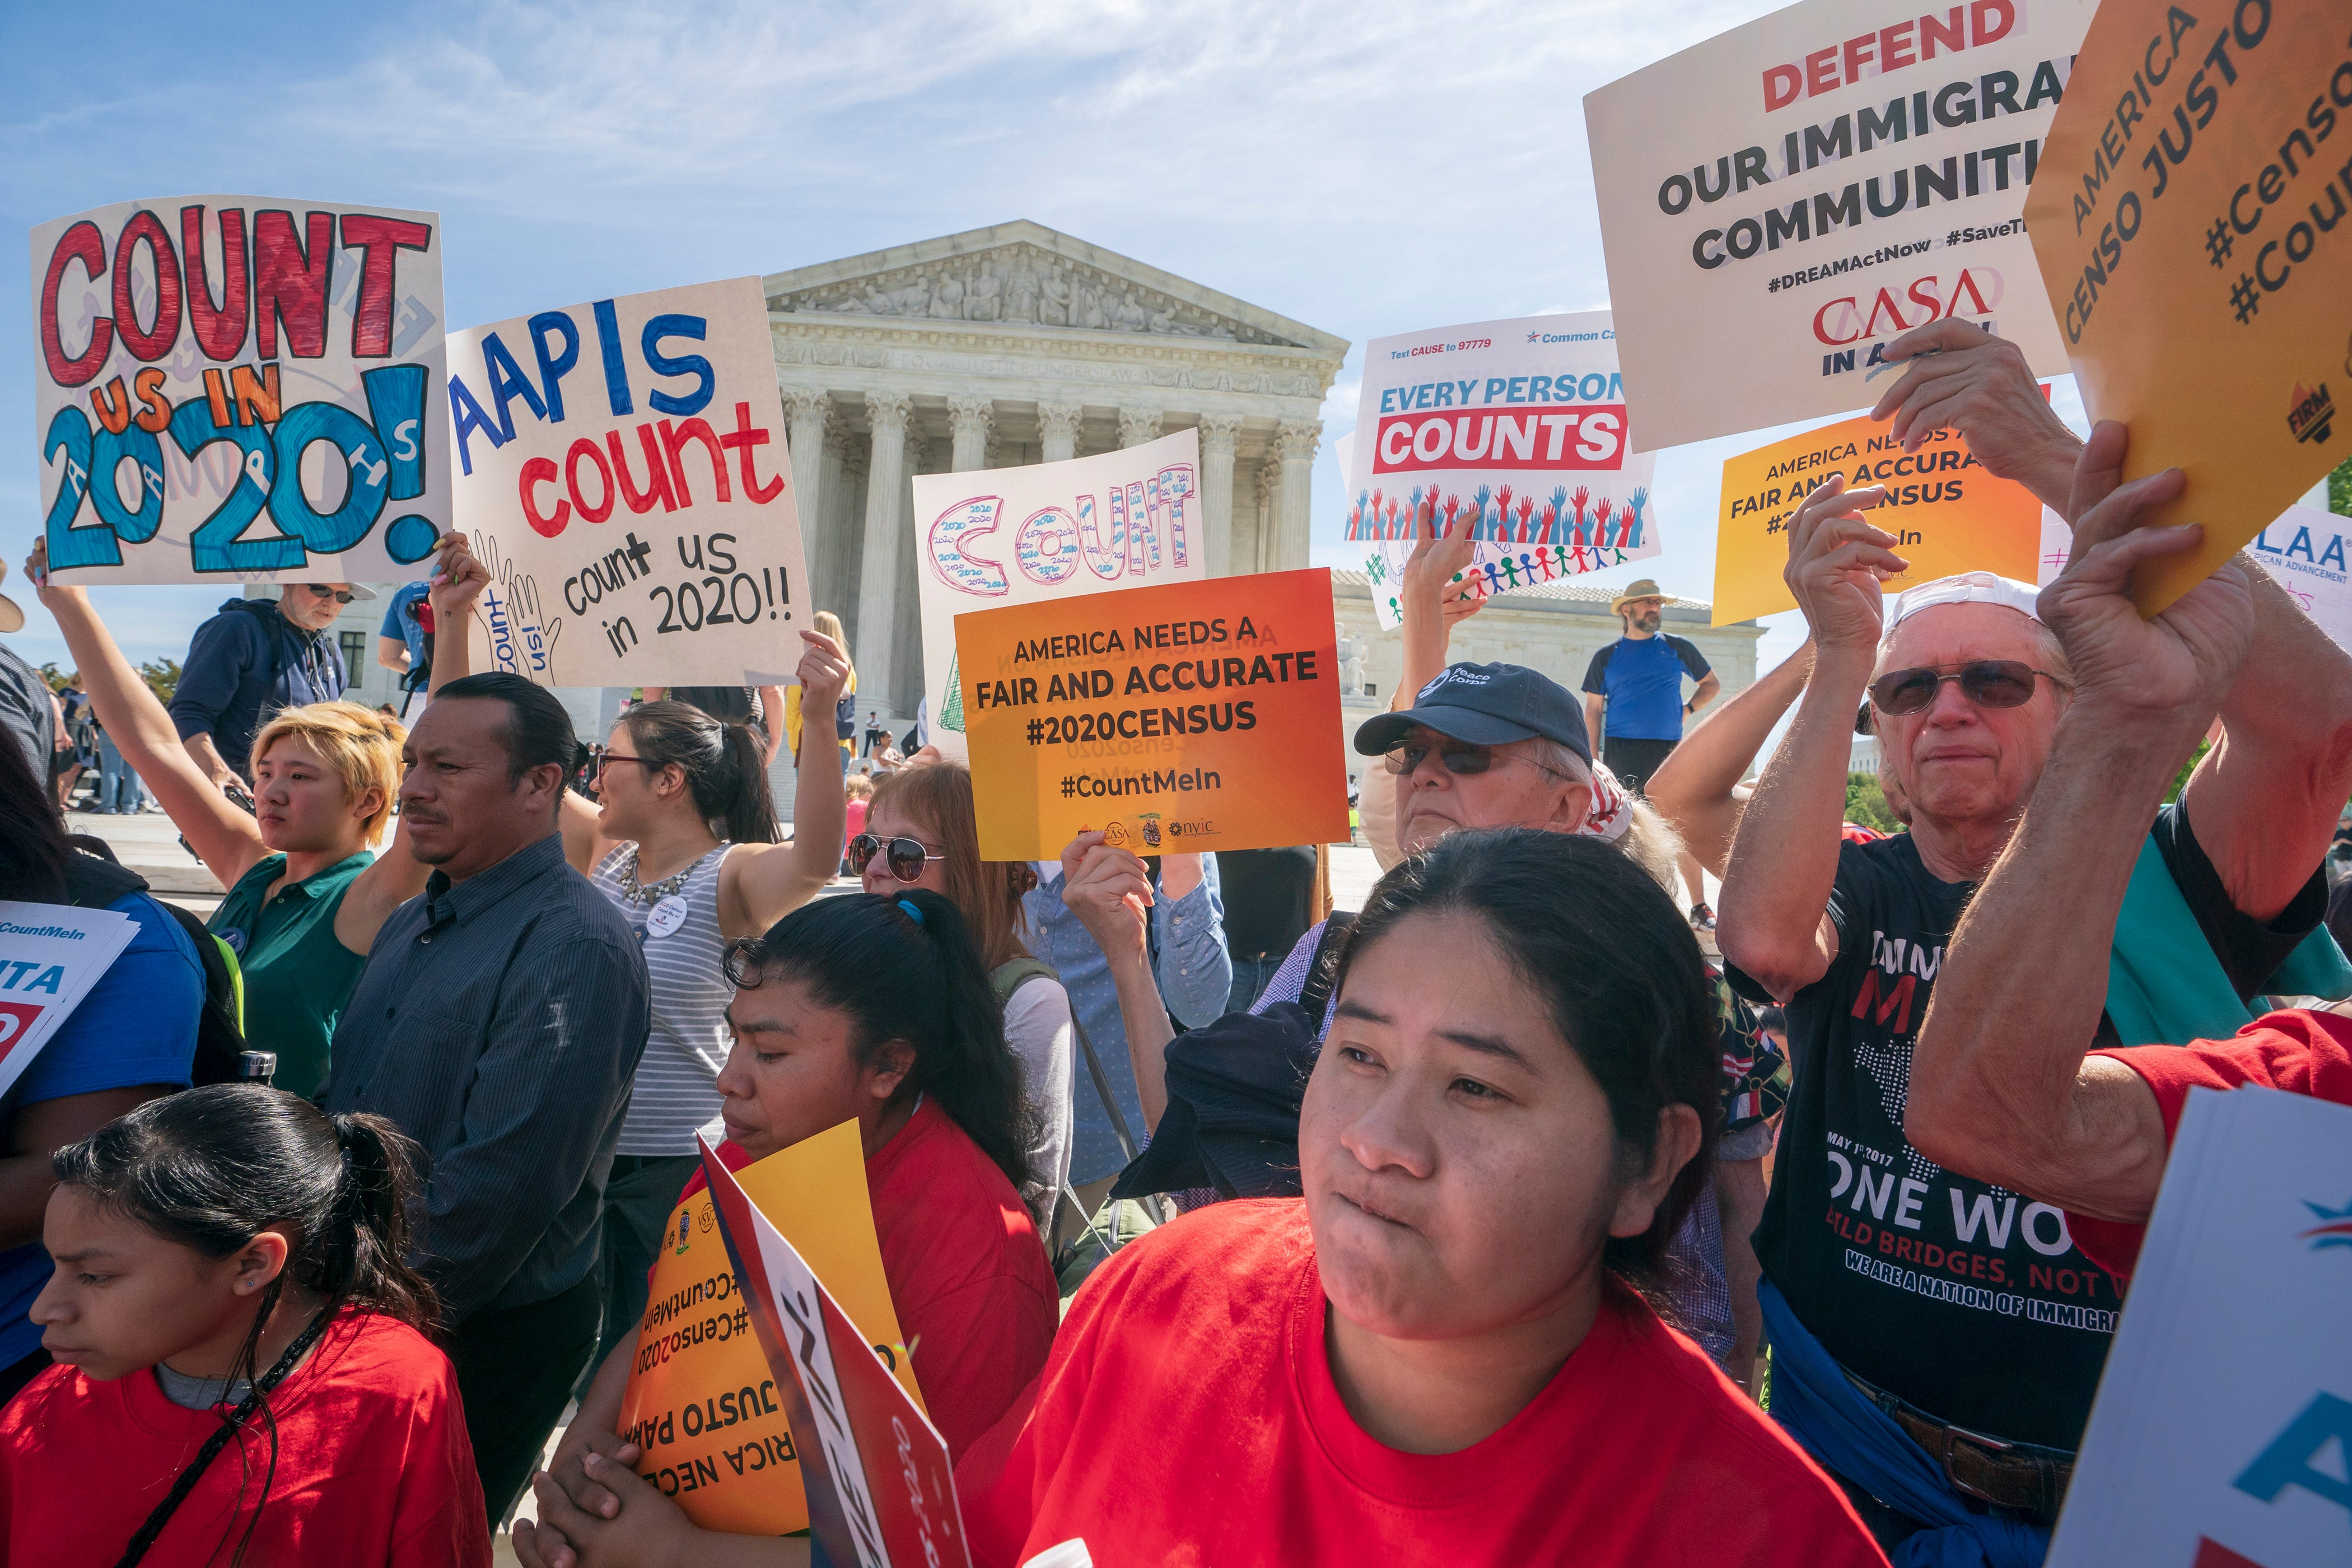 President Trump s war on immigration takes on political overtone at Supreme Court